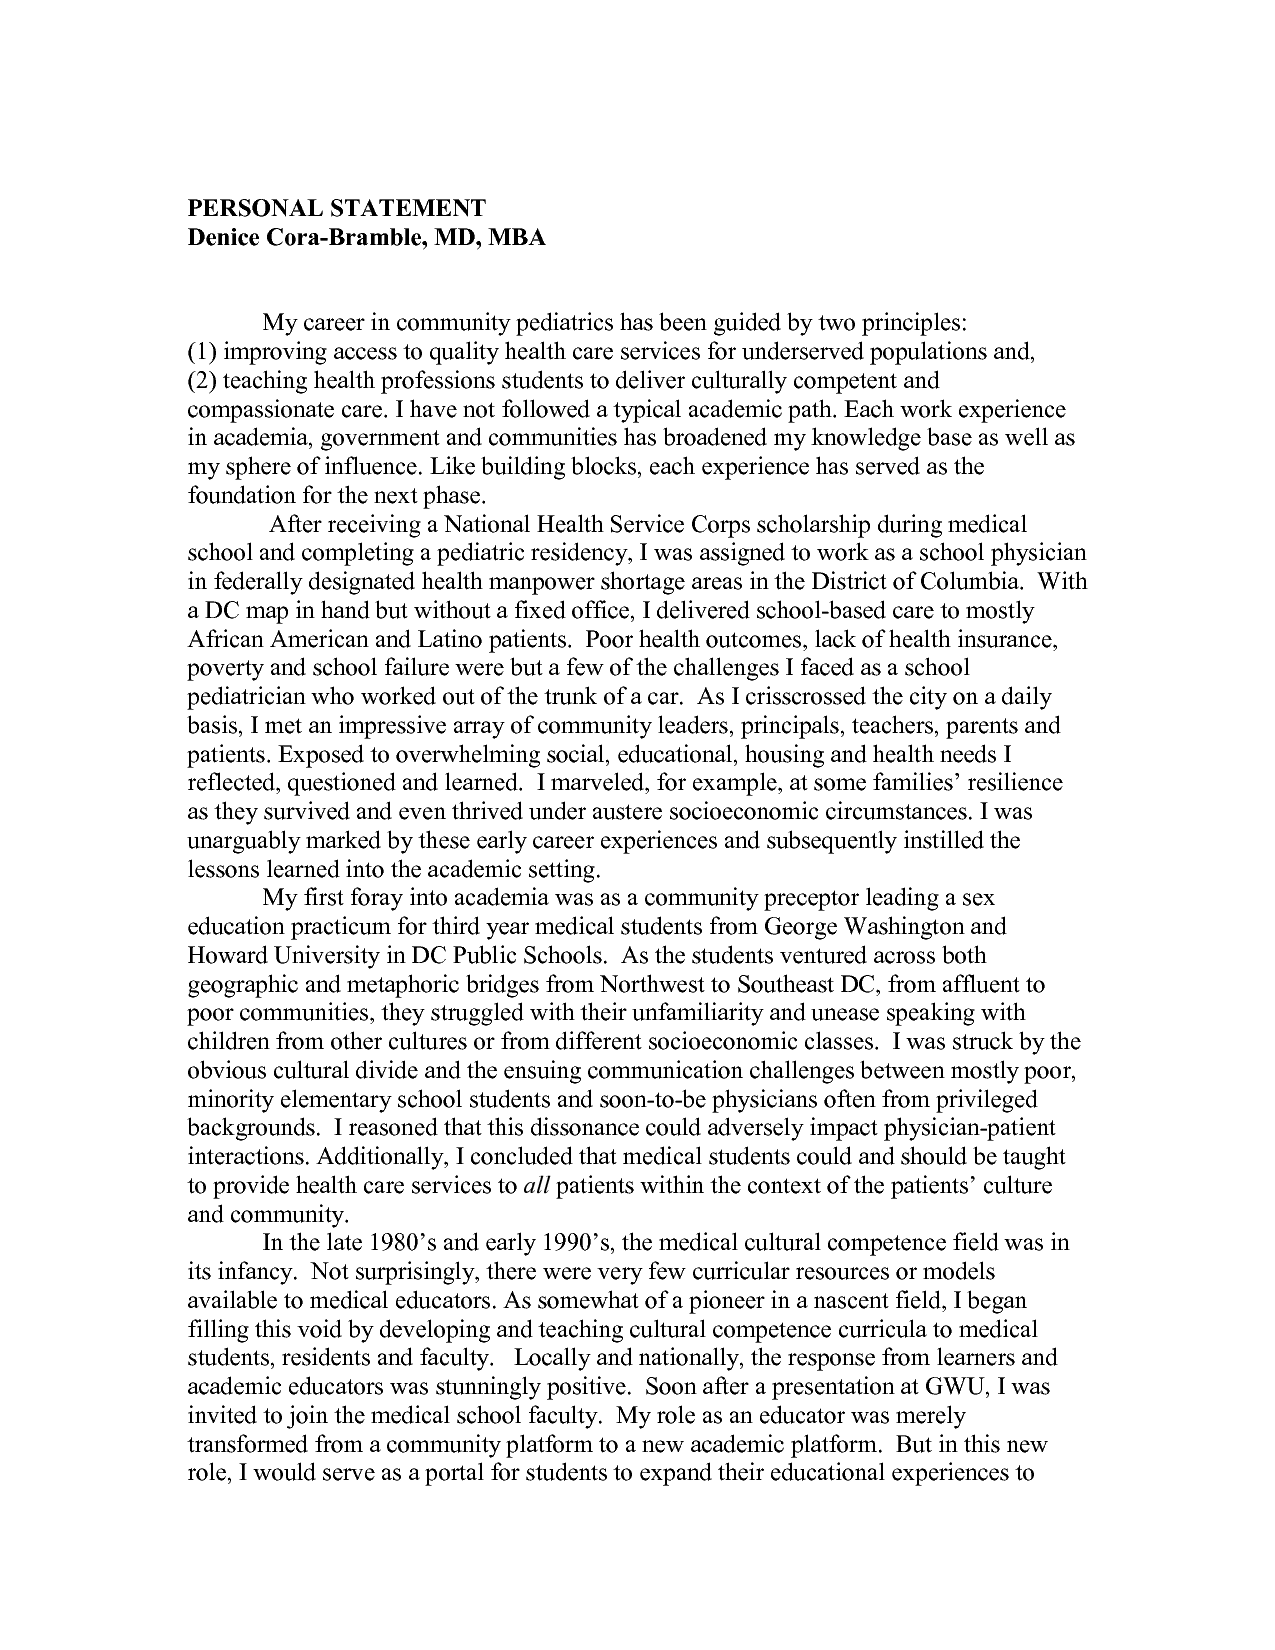 Physical Therapy Application Essay Examples Adopted By APTAs House Of Delegates In 2013 Vision Statement The